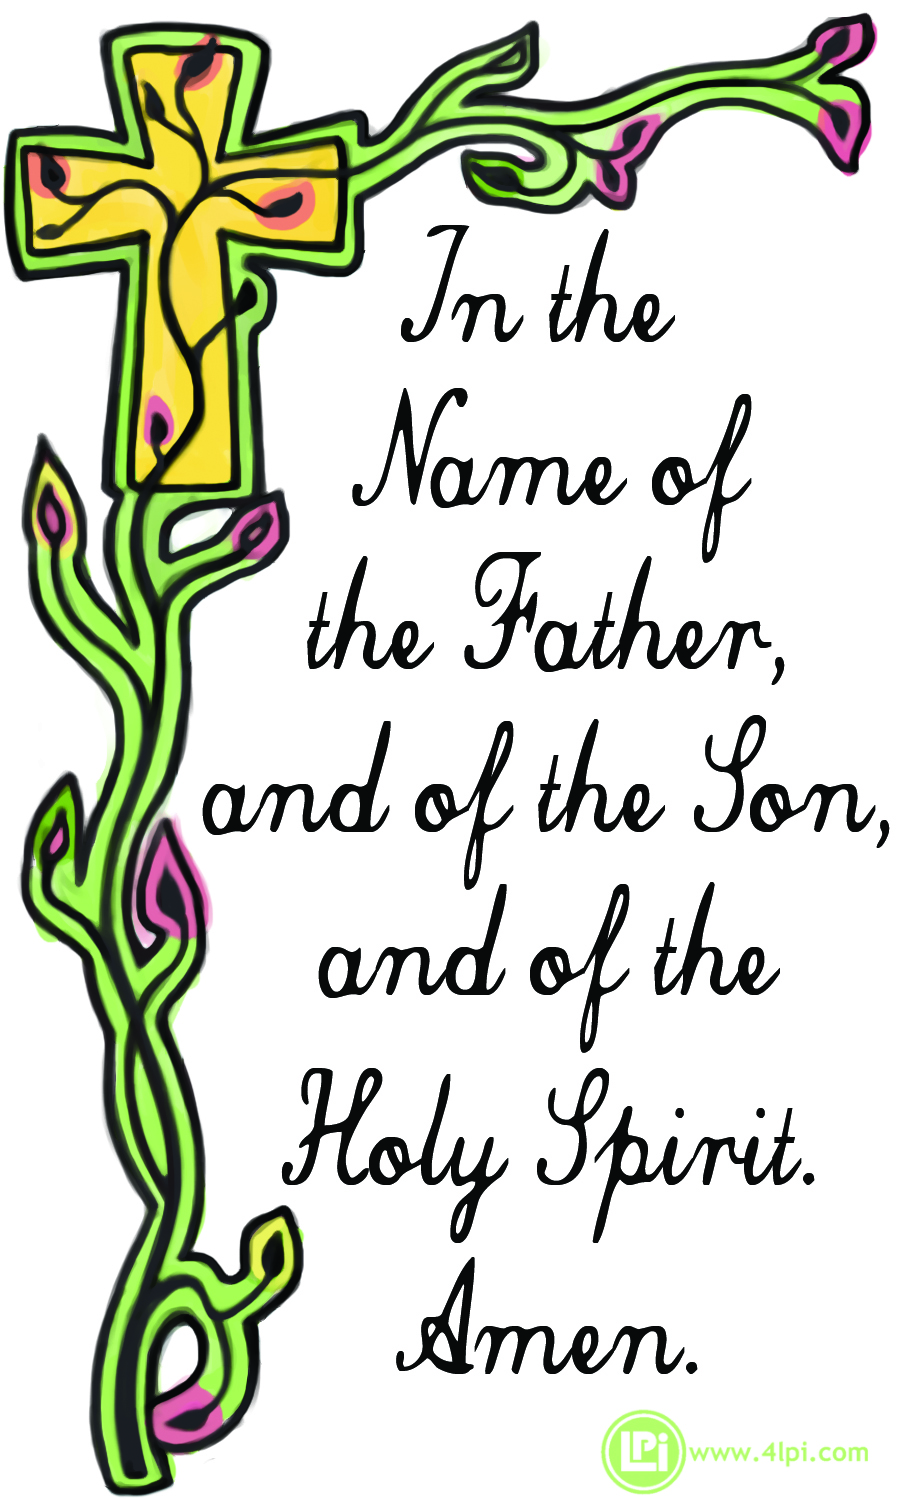 Father son and holy spirit clipart for children clipart black and white stock Free Catholic Mission Cliparts, Download Free Clip Art, Free Clip ... clipart black and white stock